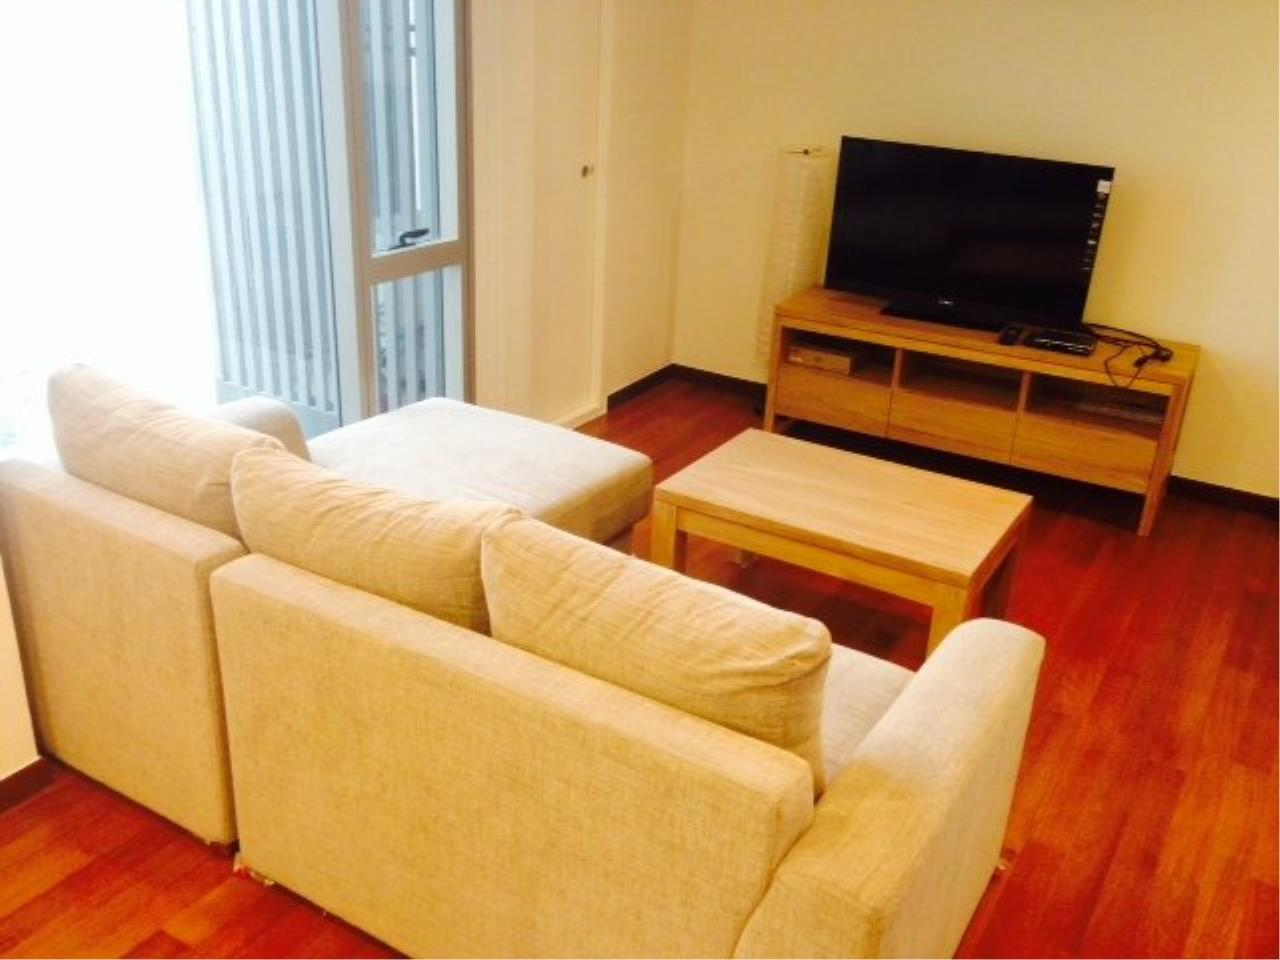 Piri Property Agency's Cozy 1 Bedroom Condo in the Ashton Bulding for rent on high floor 1